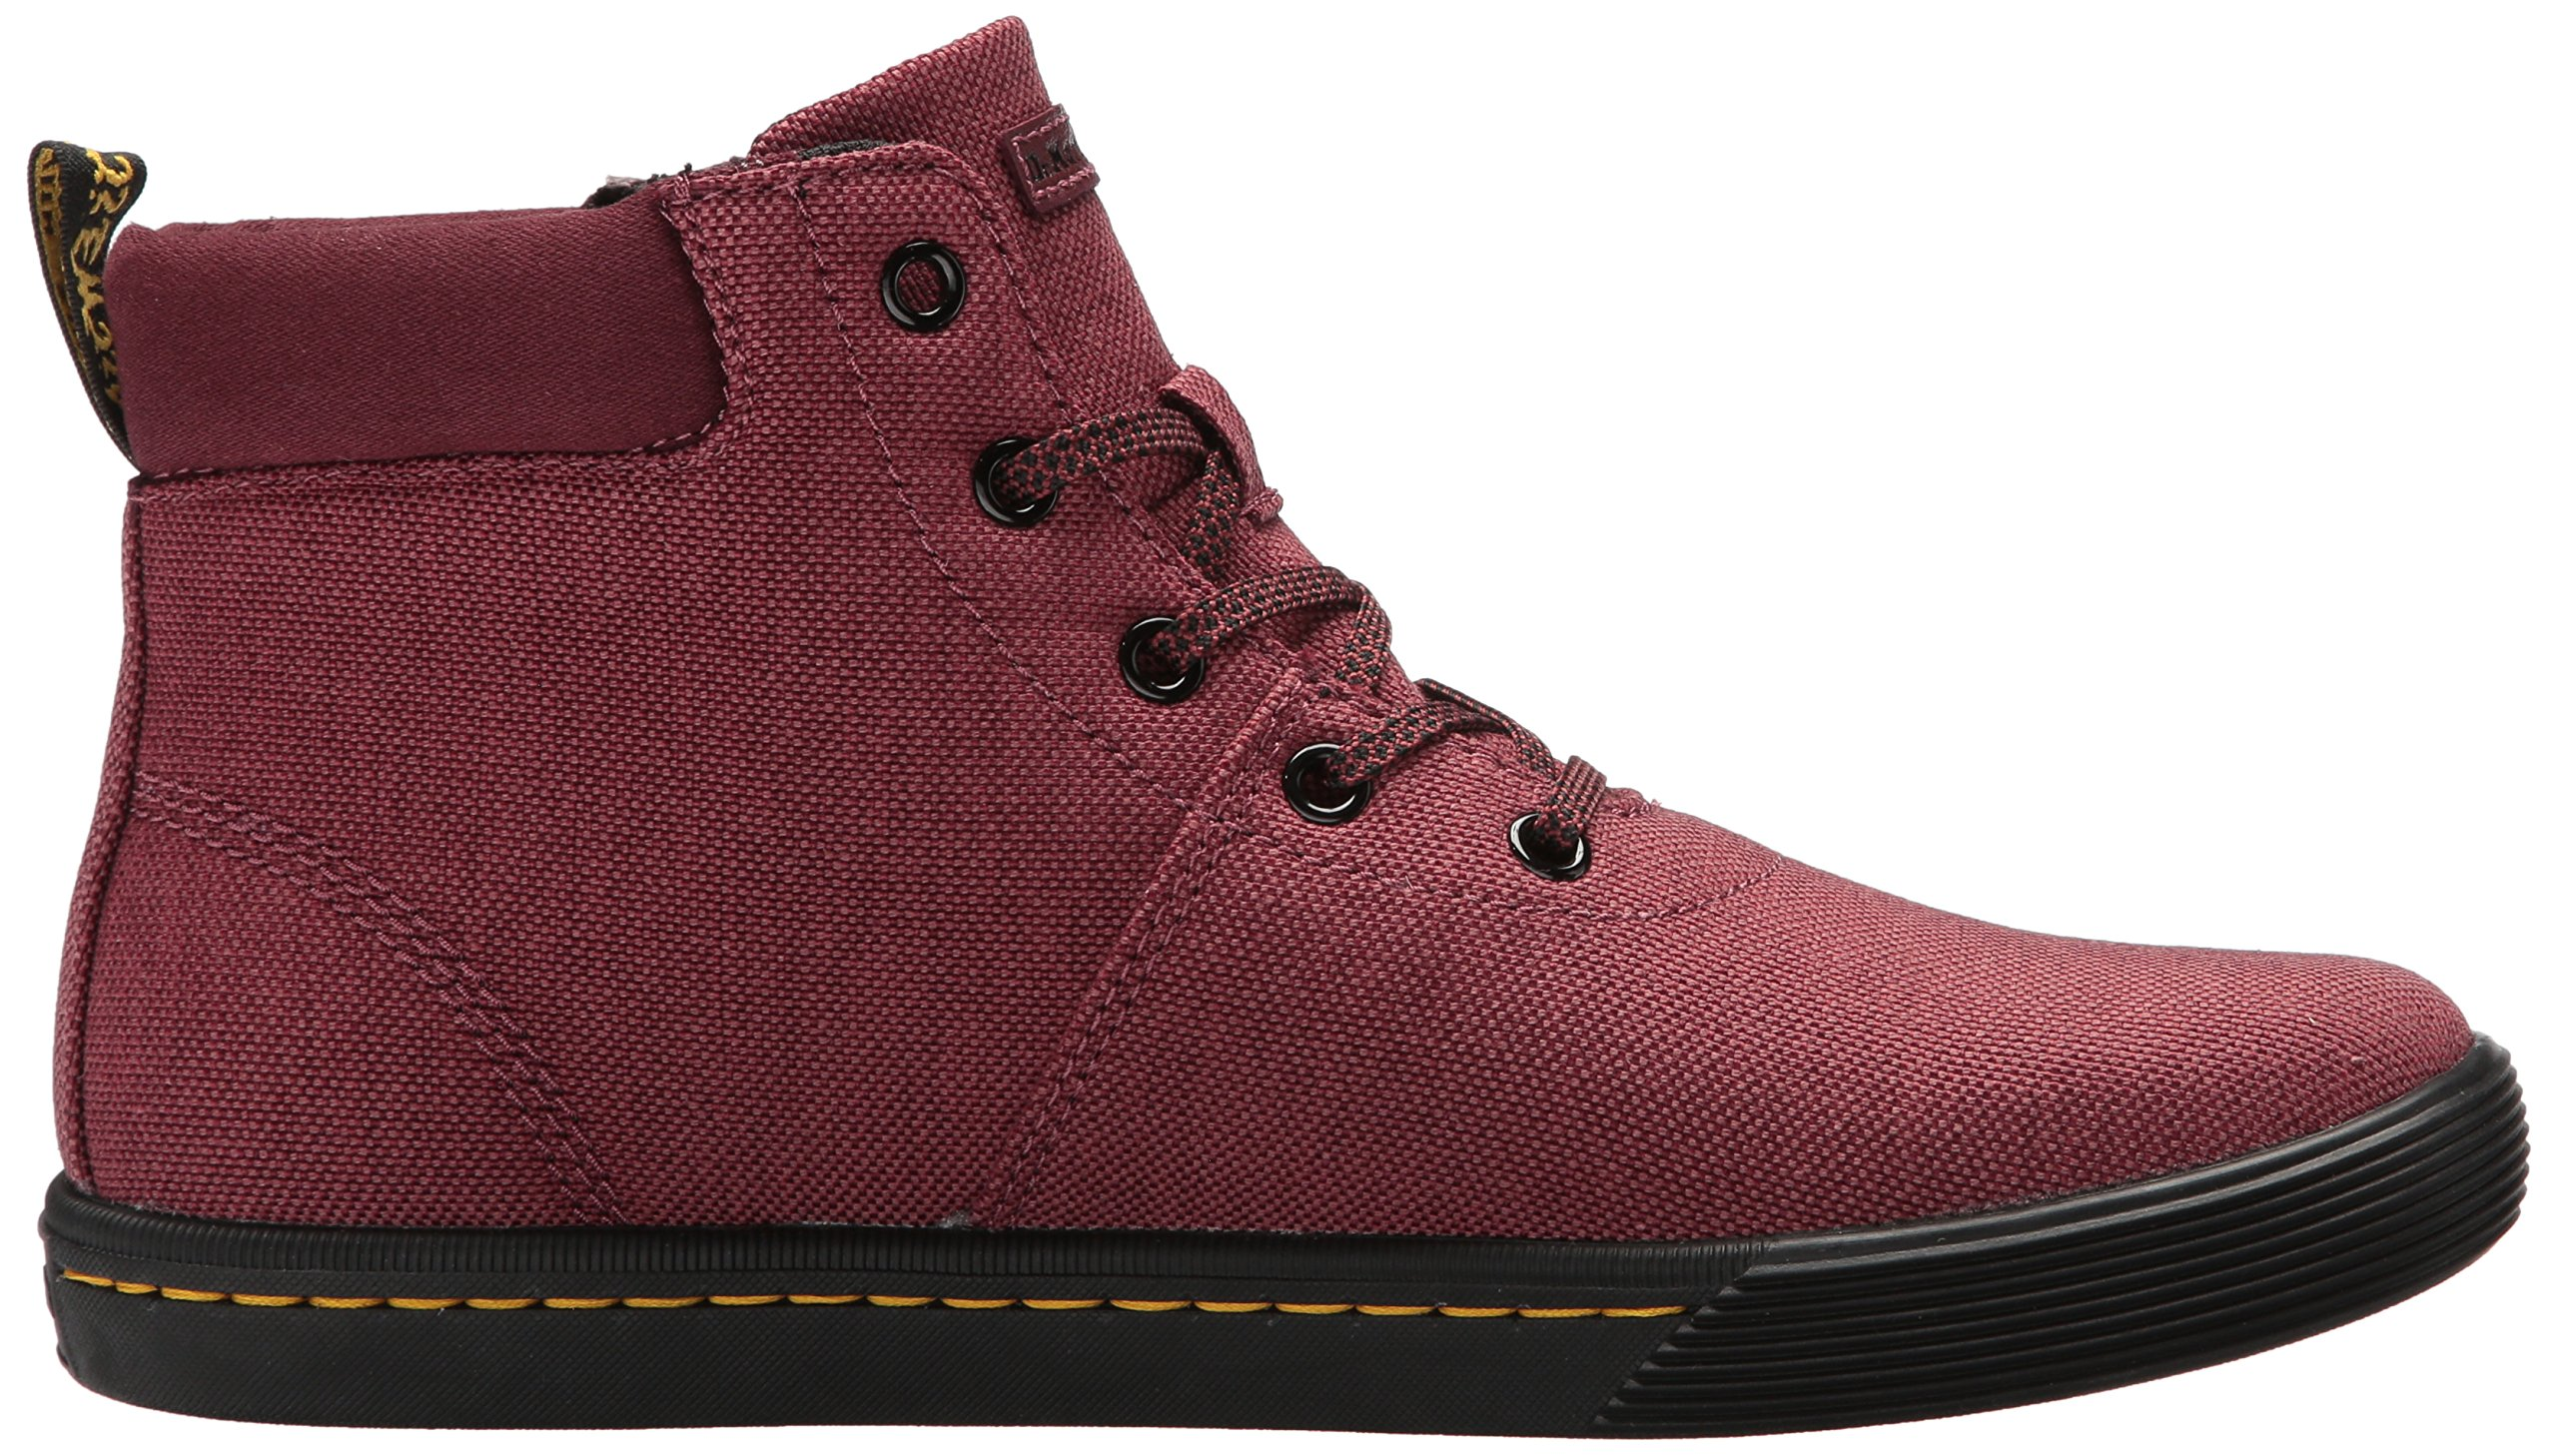 Dr. Martens Women's Maegley Fashion Boot, Cherry Red Woven Textile+Fine Canvas, 5 Medium UK (7 US) by Dr. Martens (Image #7)